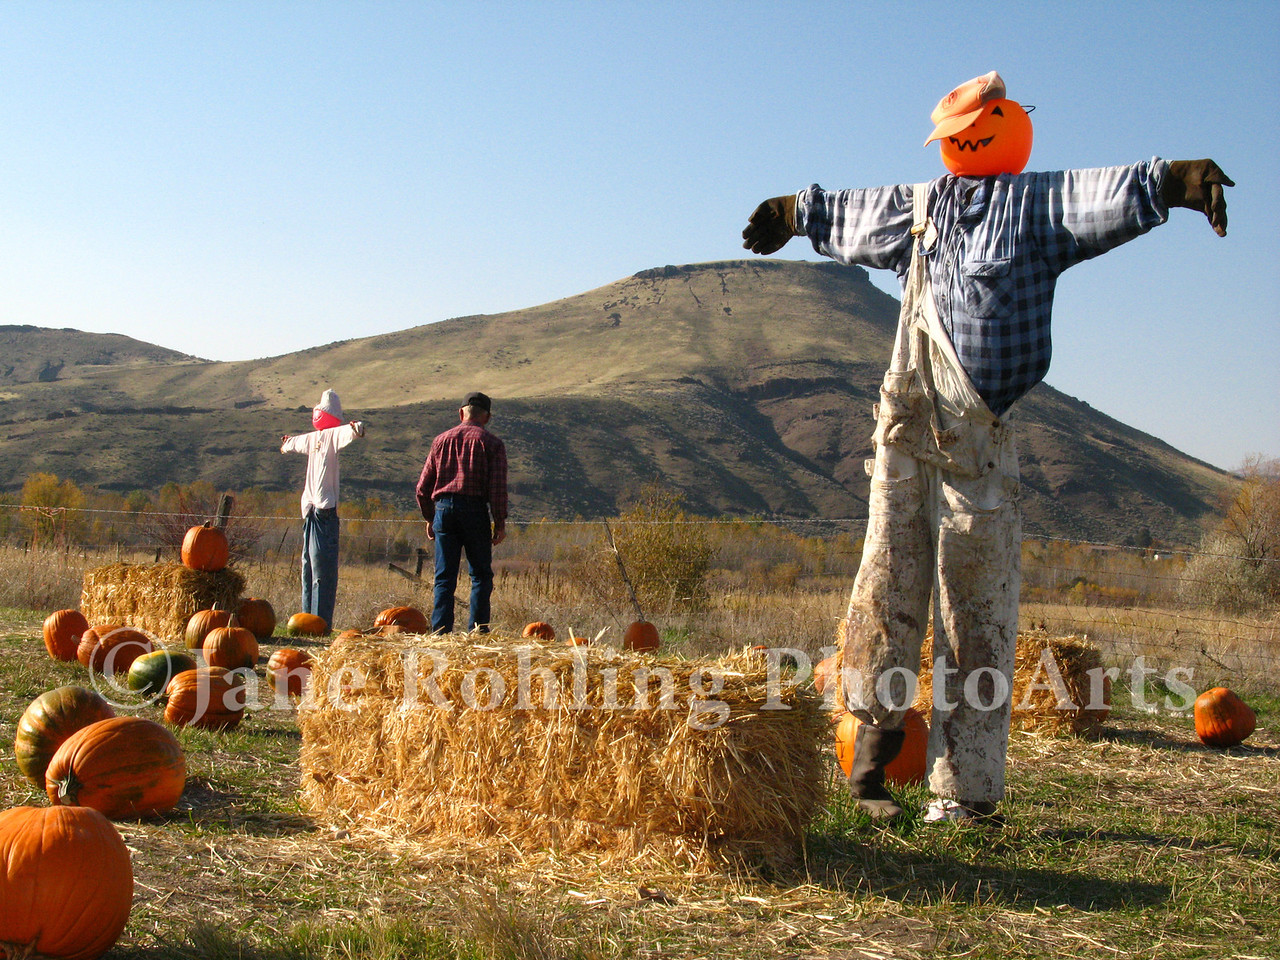 Scarecrows, pumpkins, and straw bales set the stage for a fun Halloween family event, Thunder Mountain Railroad, Horseshoe Bend, Idaho.